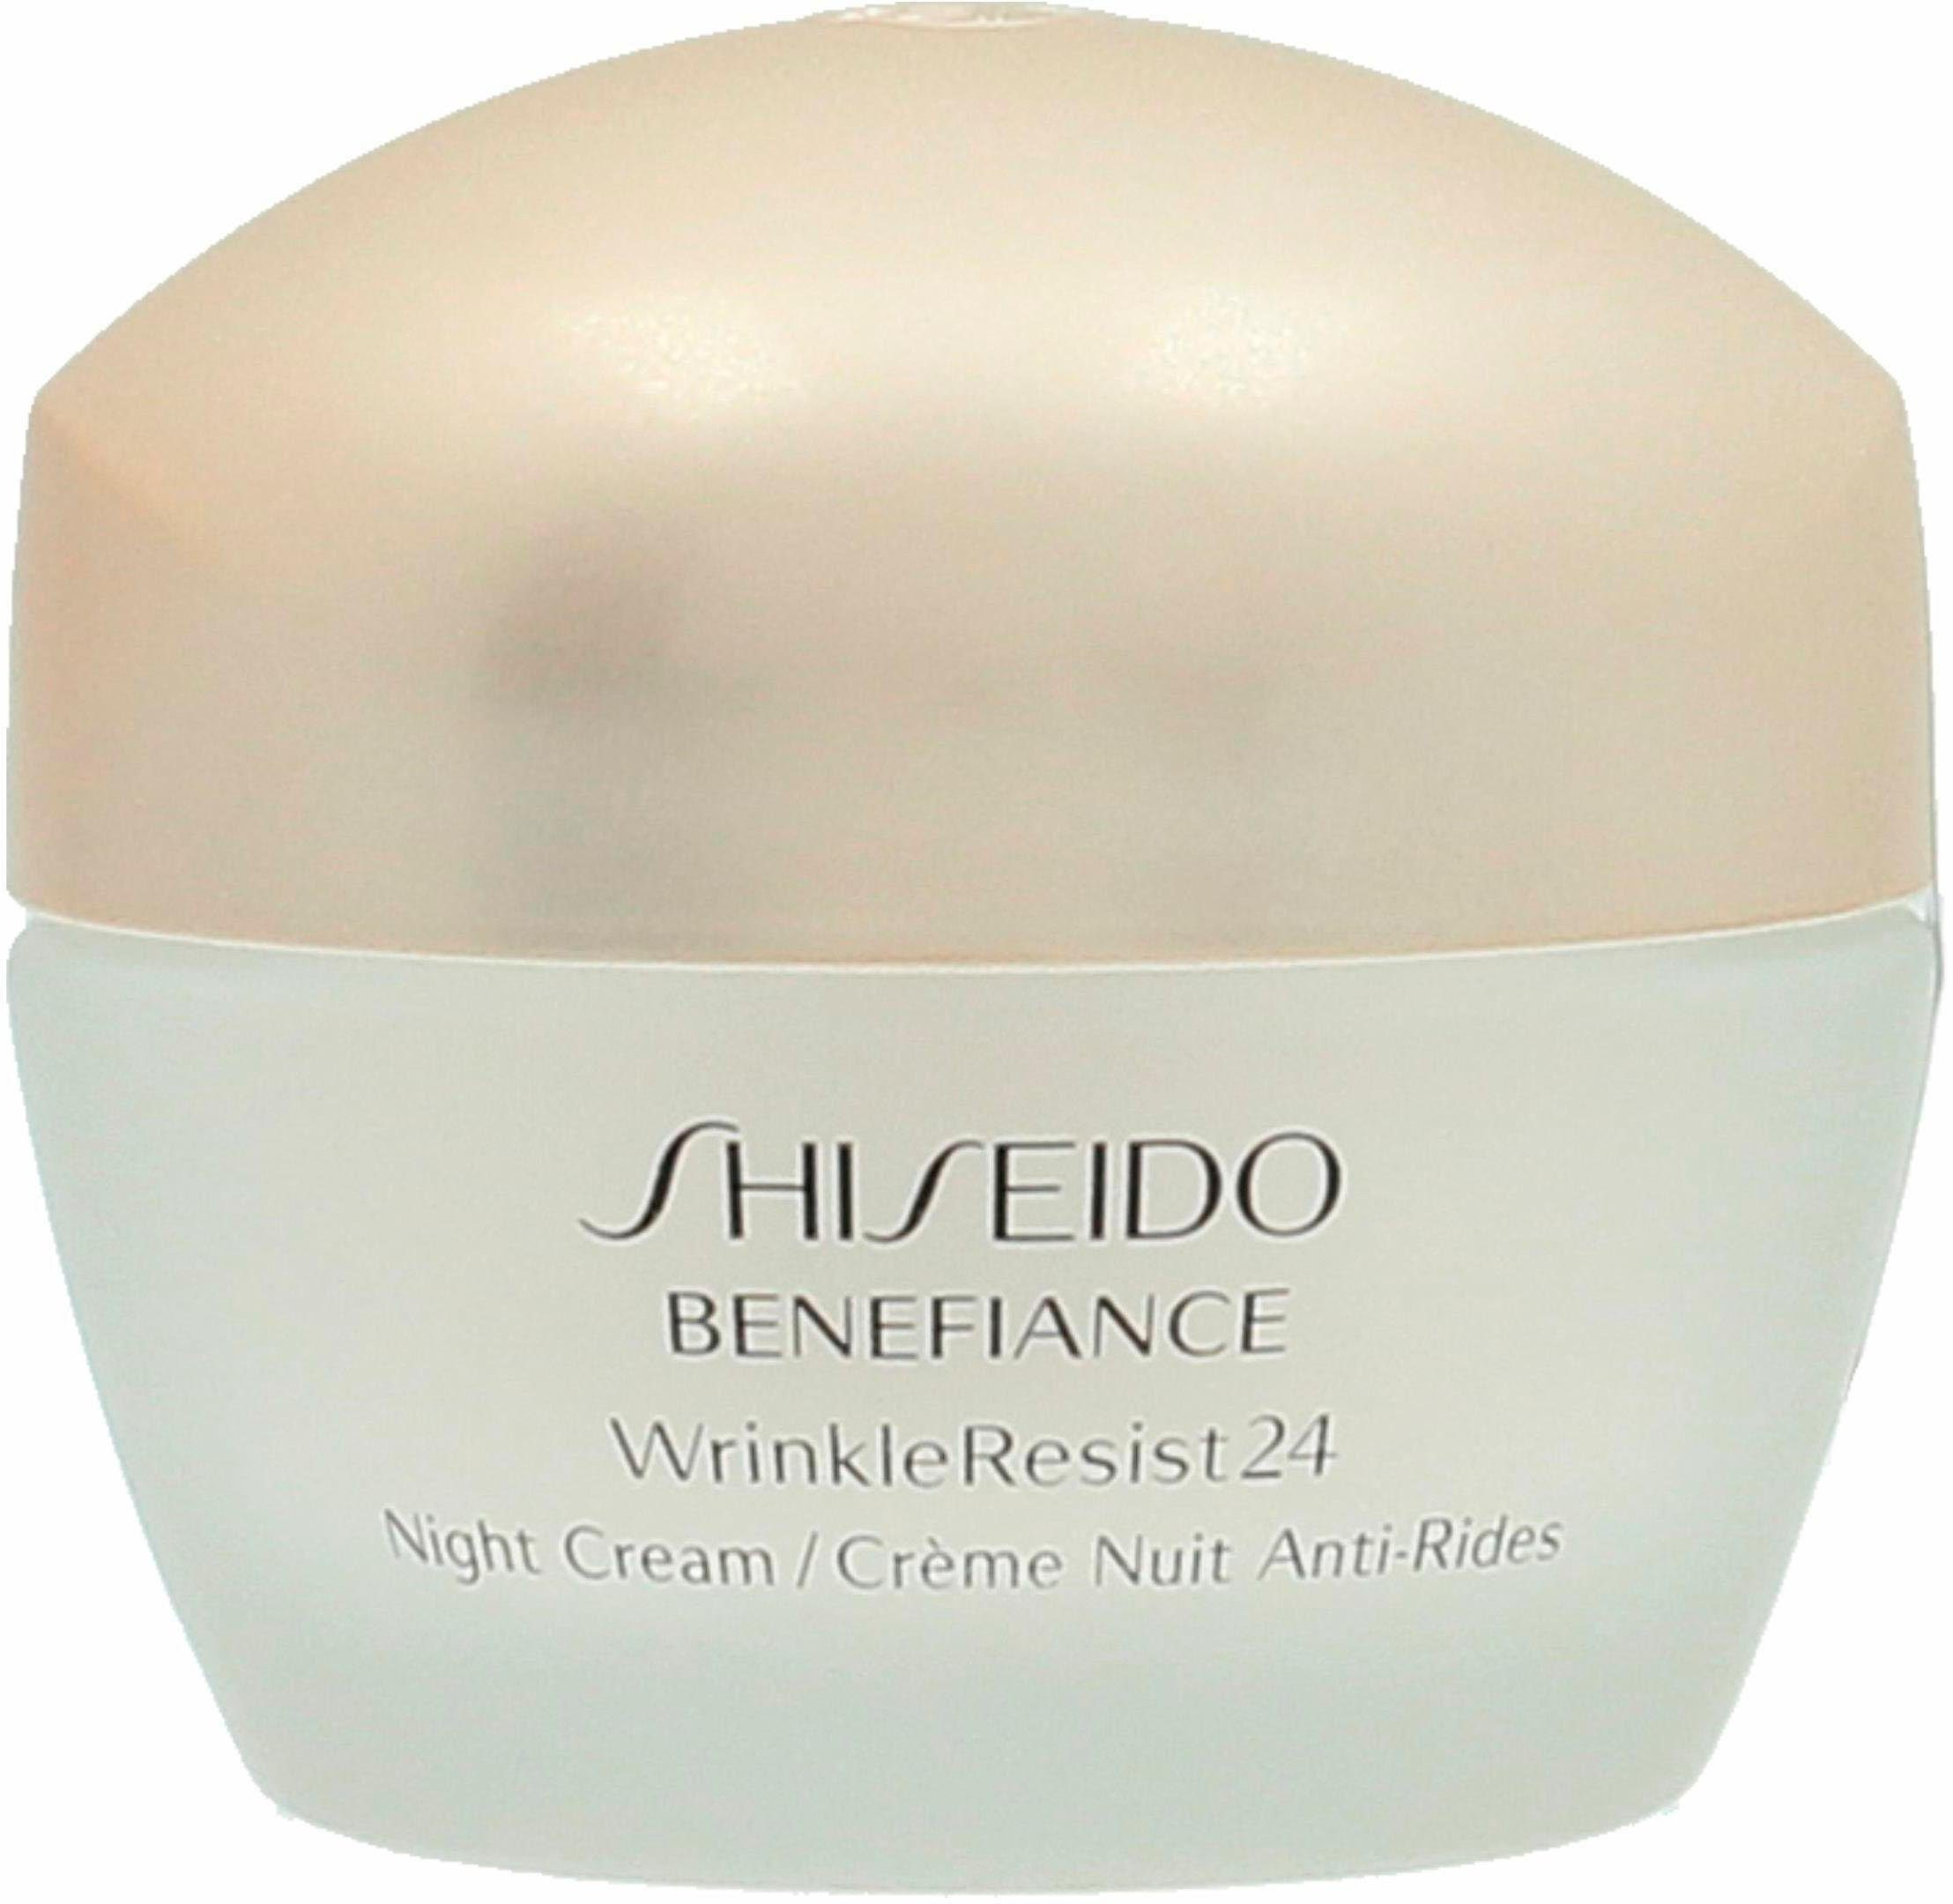 Shiseido, »Benefiance WrinkleResist 24 Night Cream«, Nachtcreme